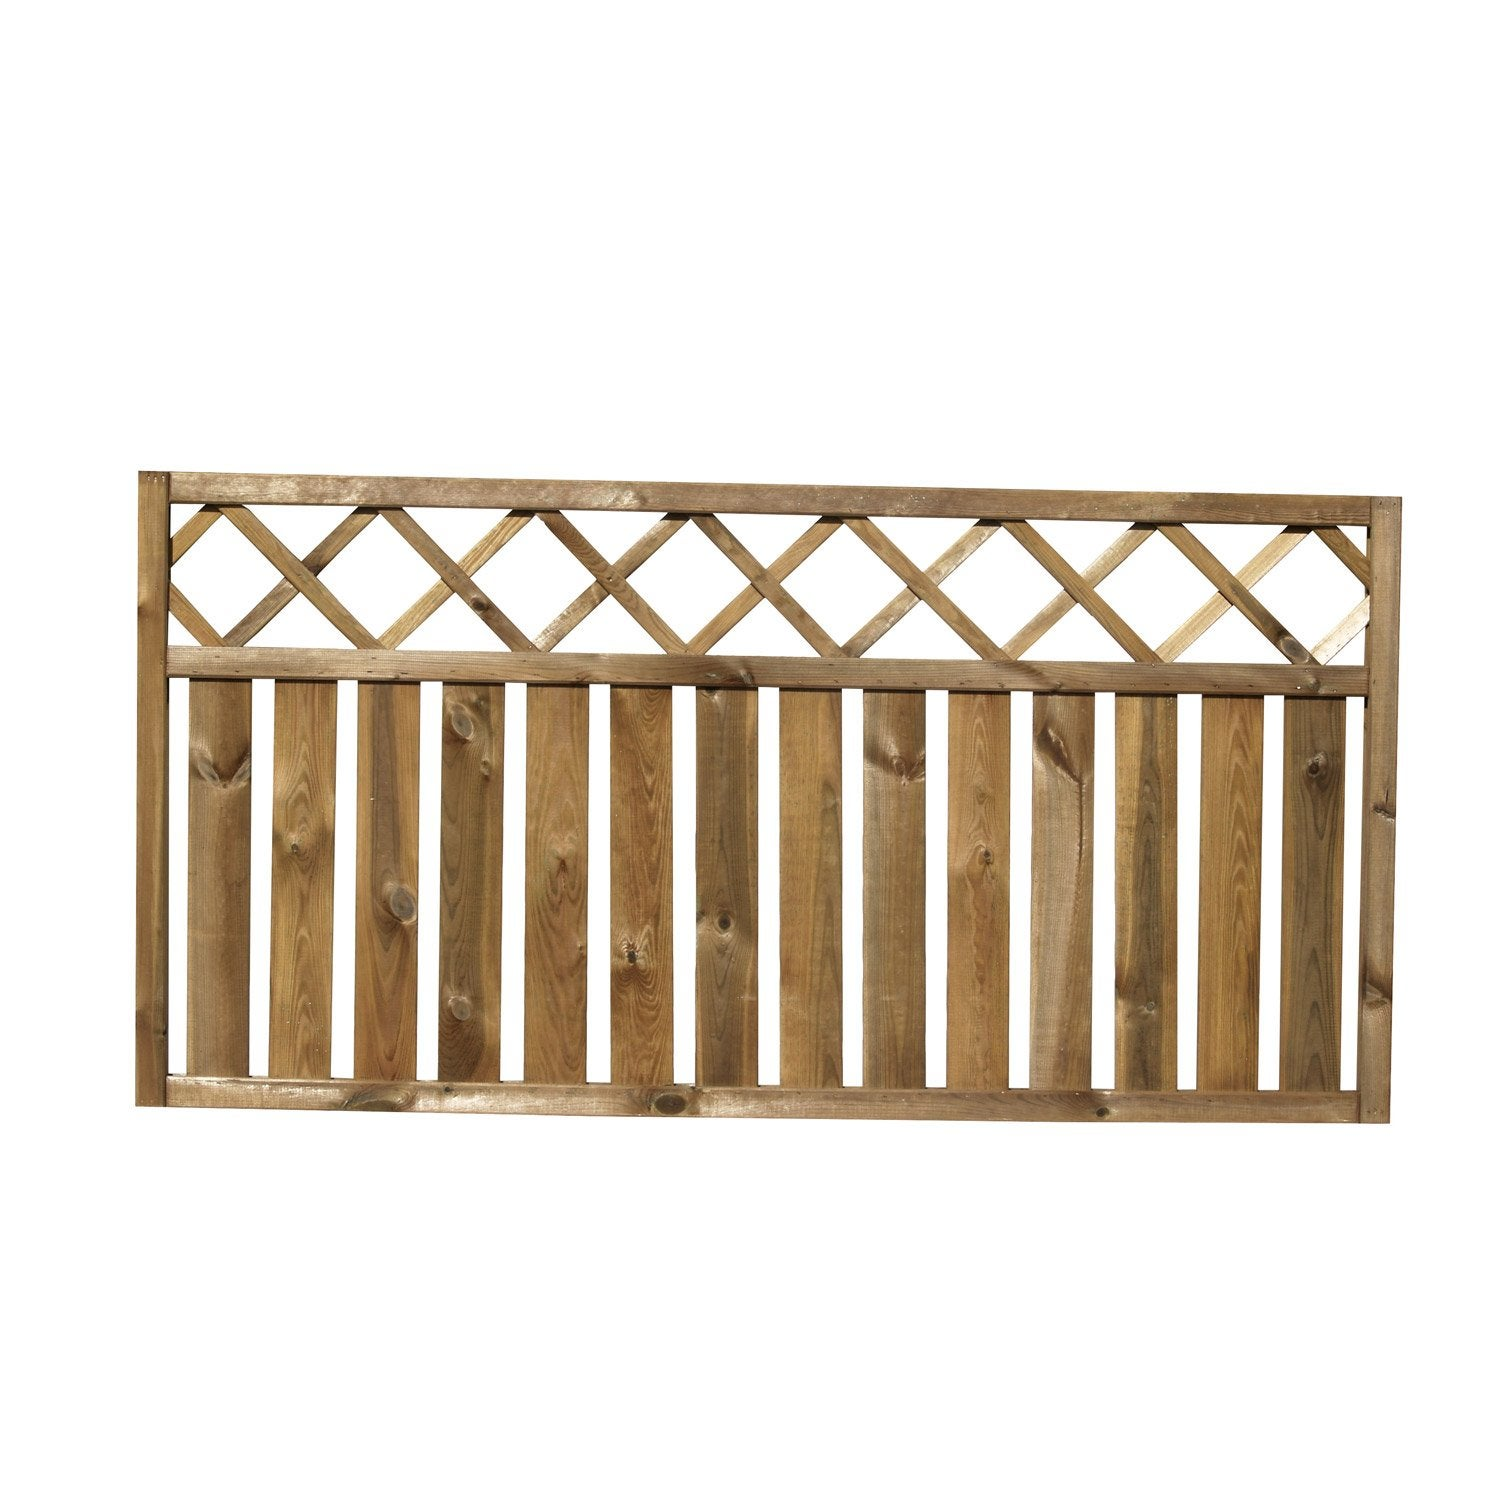 Barri re bois pinto naturel x cm leroy merlin for Barriere exterieur en bois